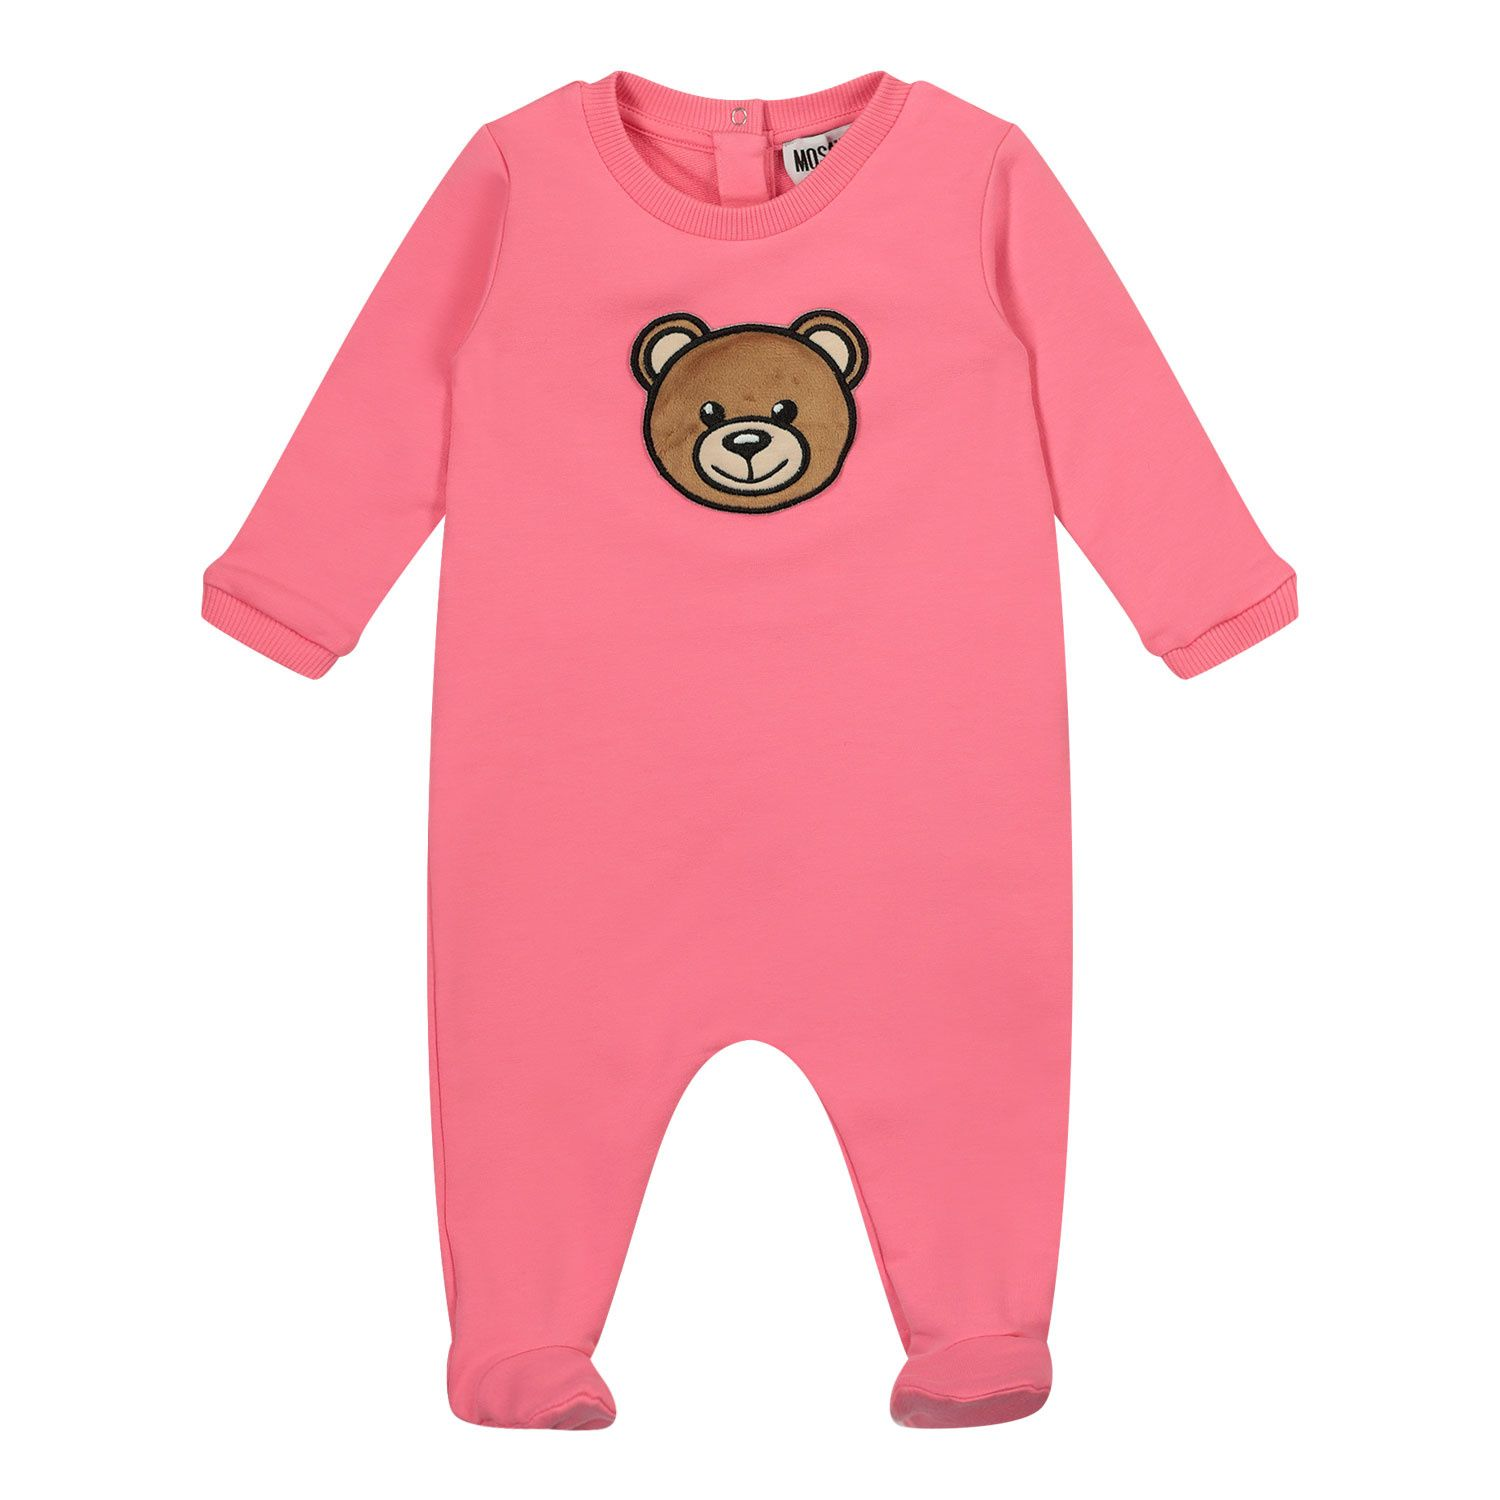 Picture of Moschino MPT01J baby playsuit pink